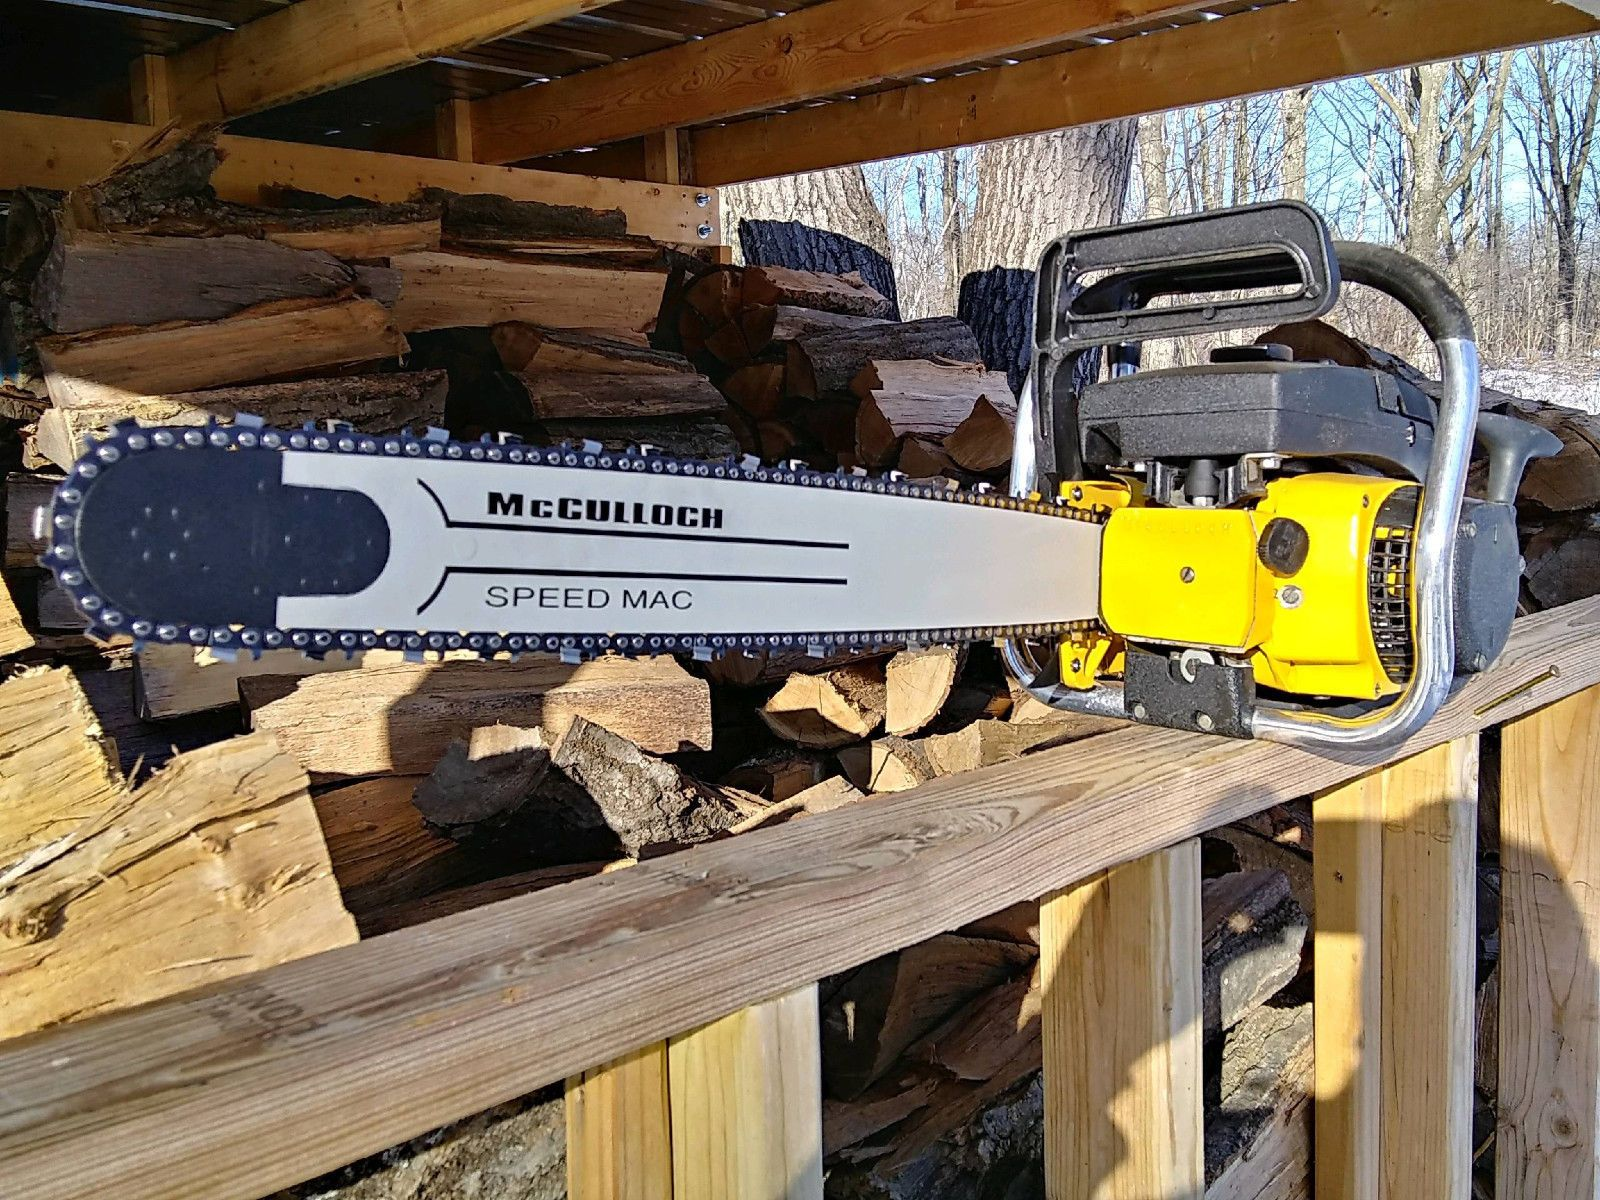 Mcculloch super pro mac 81 chainsaw | Best Chainsaws in 2019